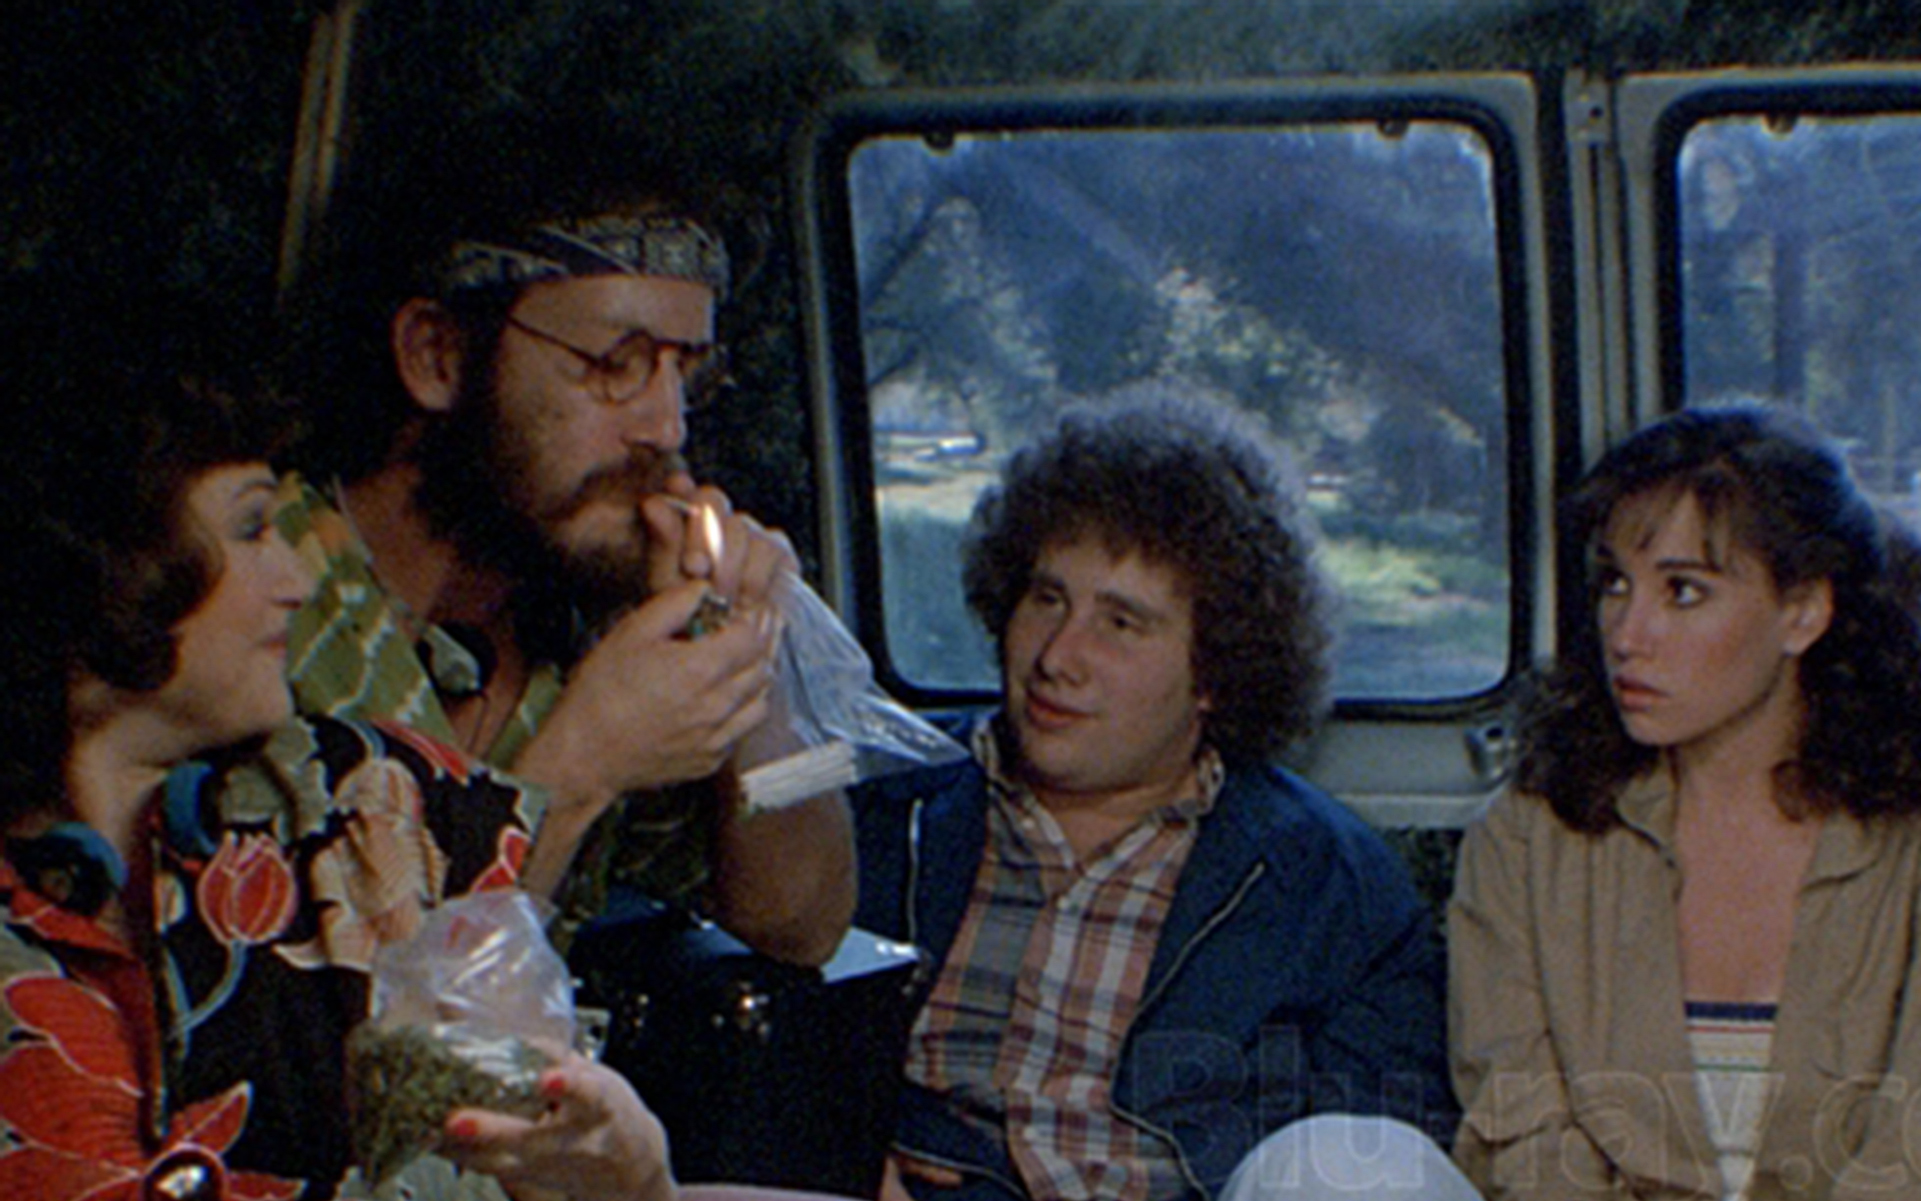 Stoners in Friday the 13th Part III